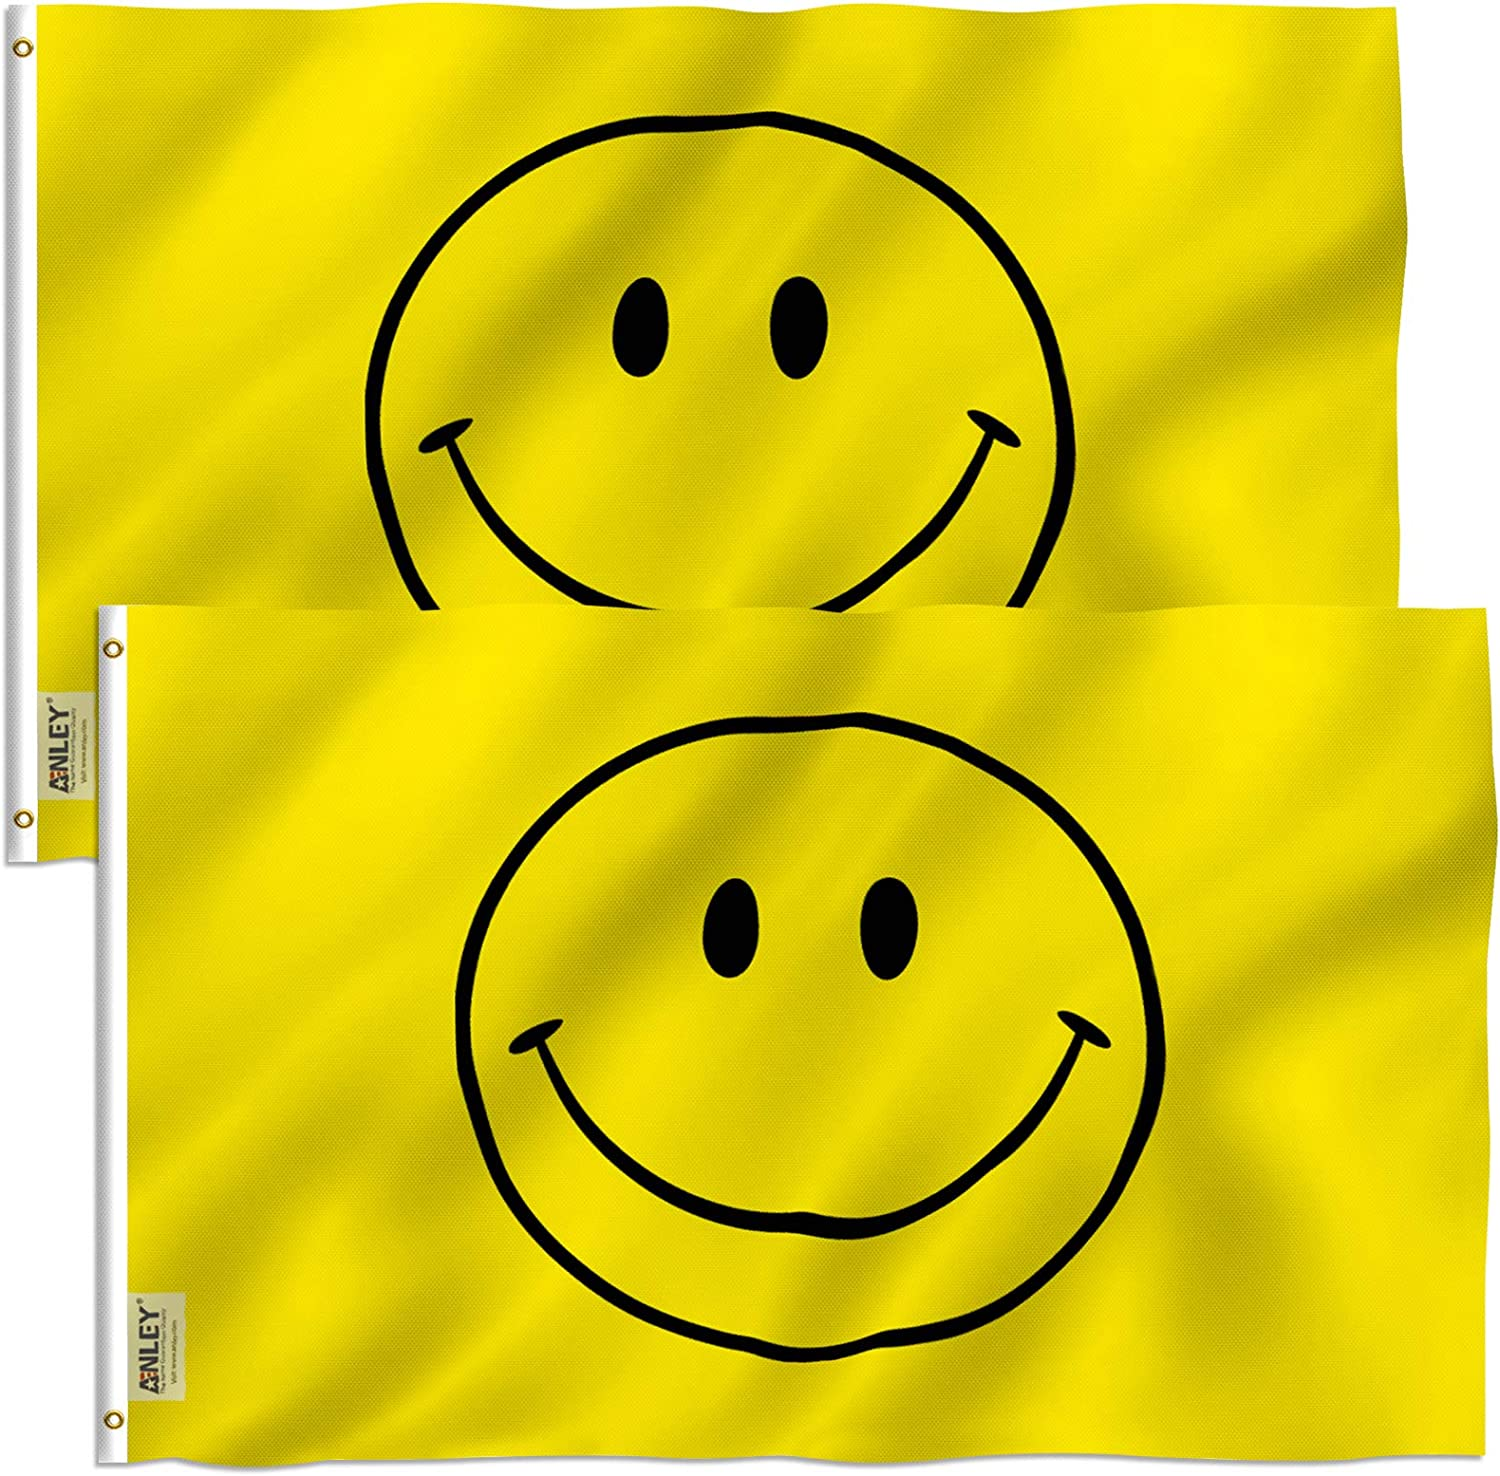 Anley Pack of 2 Fly Breeze 3x5 Foot Yellow Smiley Face Flag - Vivid Color and Fade Proof - Canvas Header and Double Stitched - Happy Face Flags Polyester with Brass Grommets 3 X 5 Ft